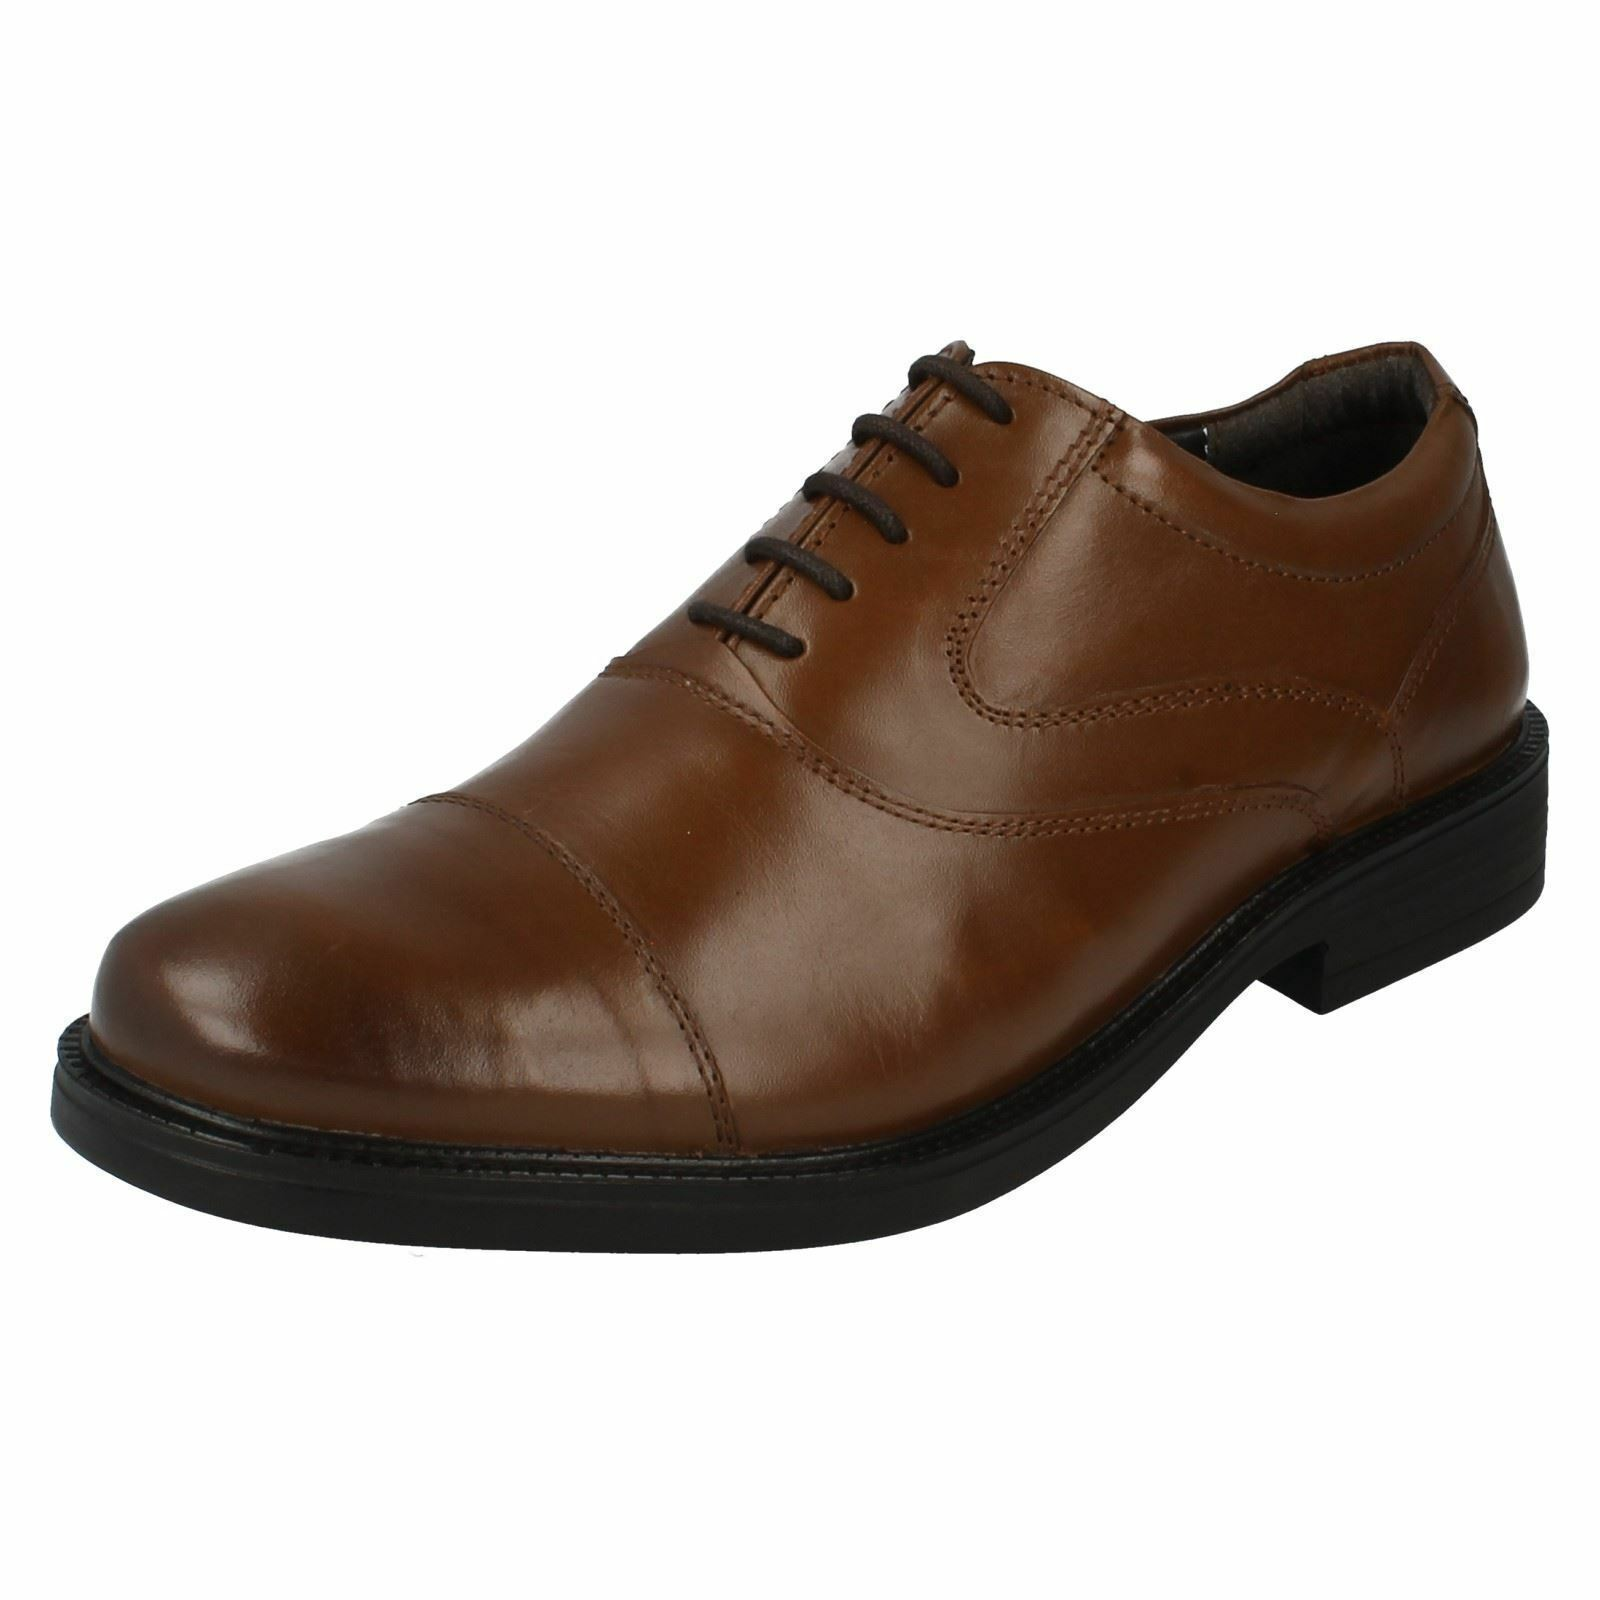 Mens Hush puppies leather lace up schuhe - Rockford Oxford CT